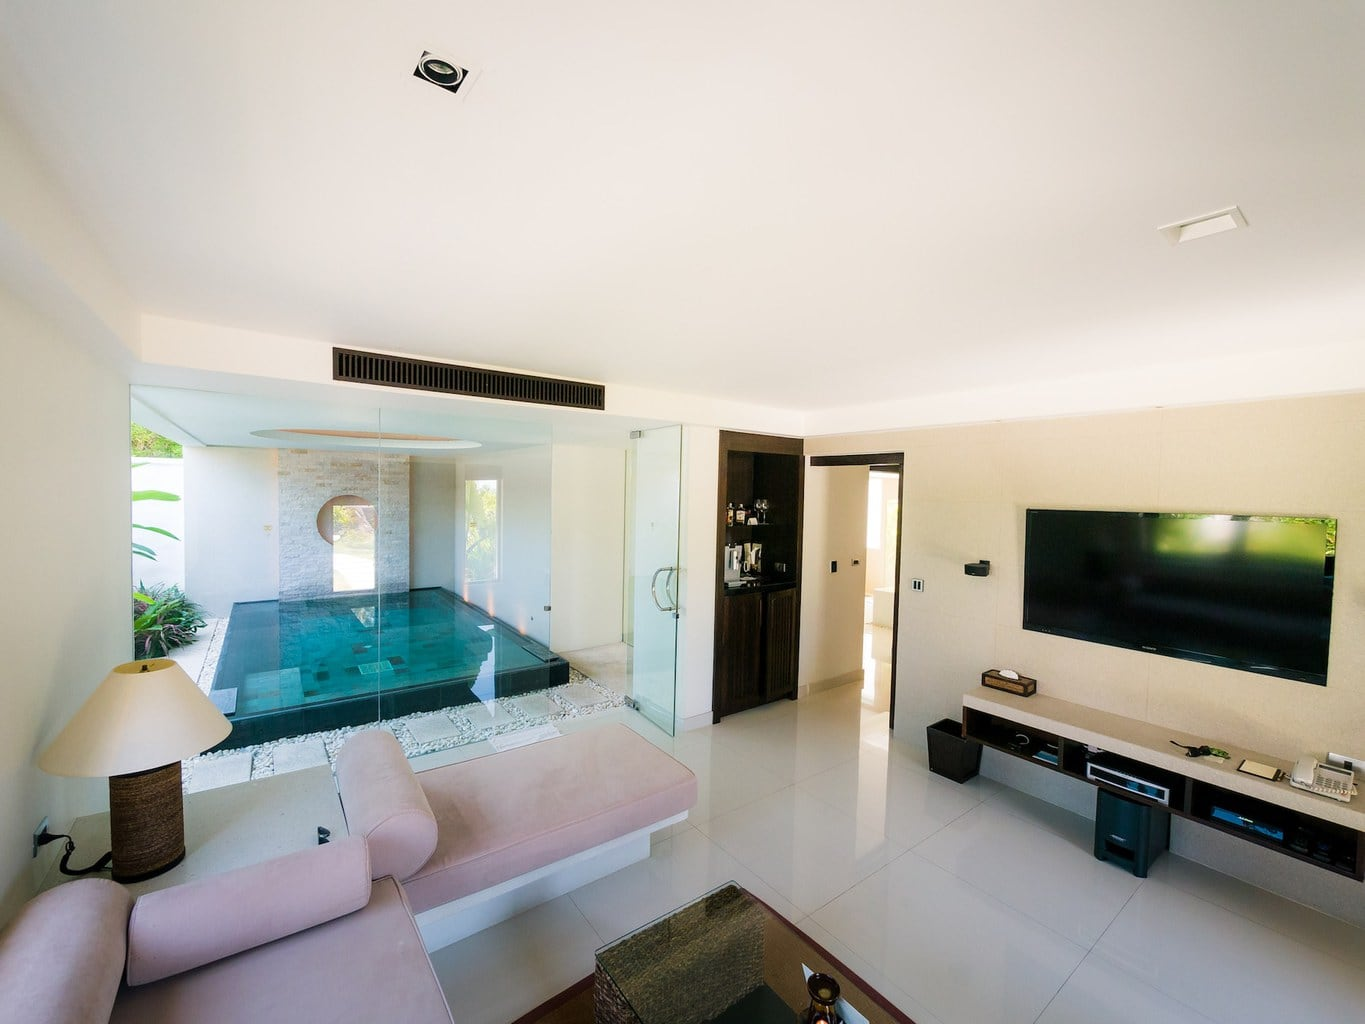 View from inside our Spa Pool Villa Room